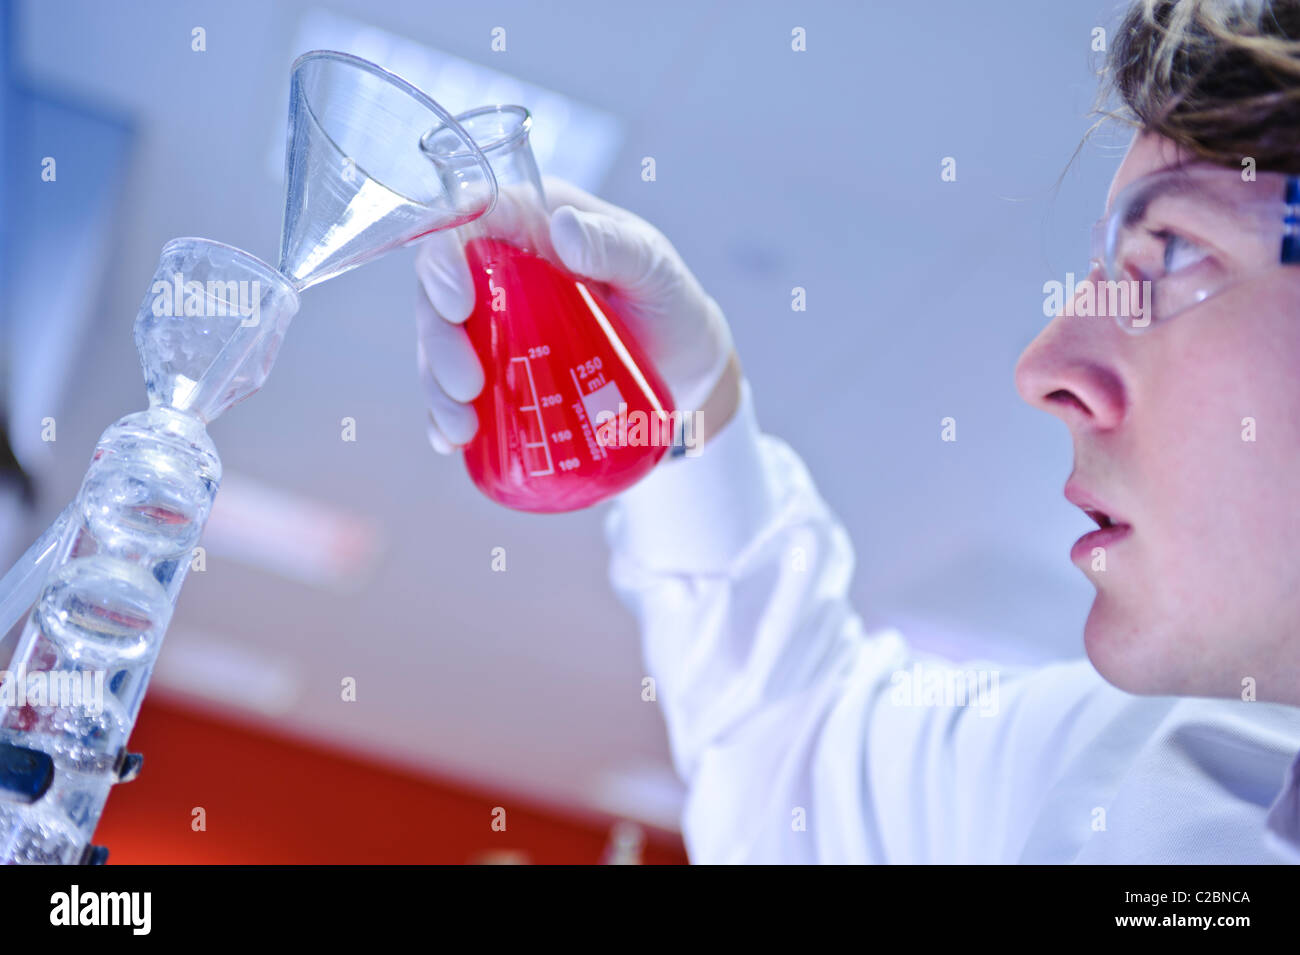 Young make scientist wearing goggles gloves and lab coat pouring bright red liquid from glass beaker into in science - Stock Image